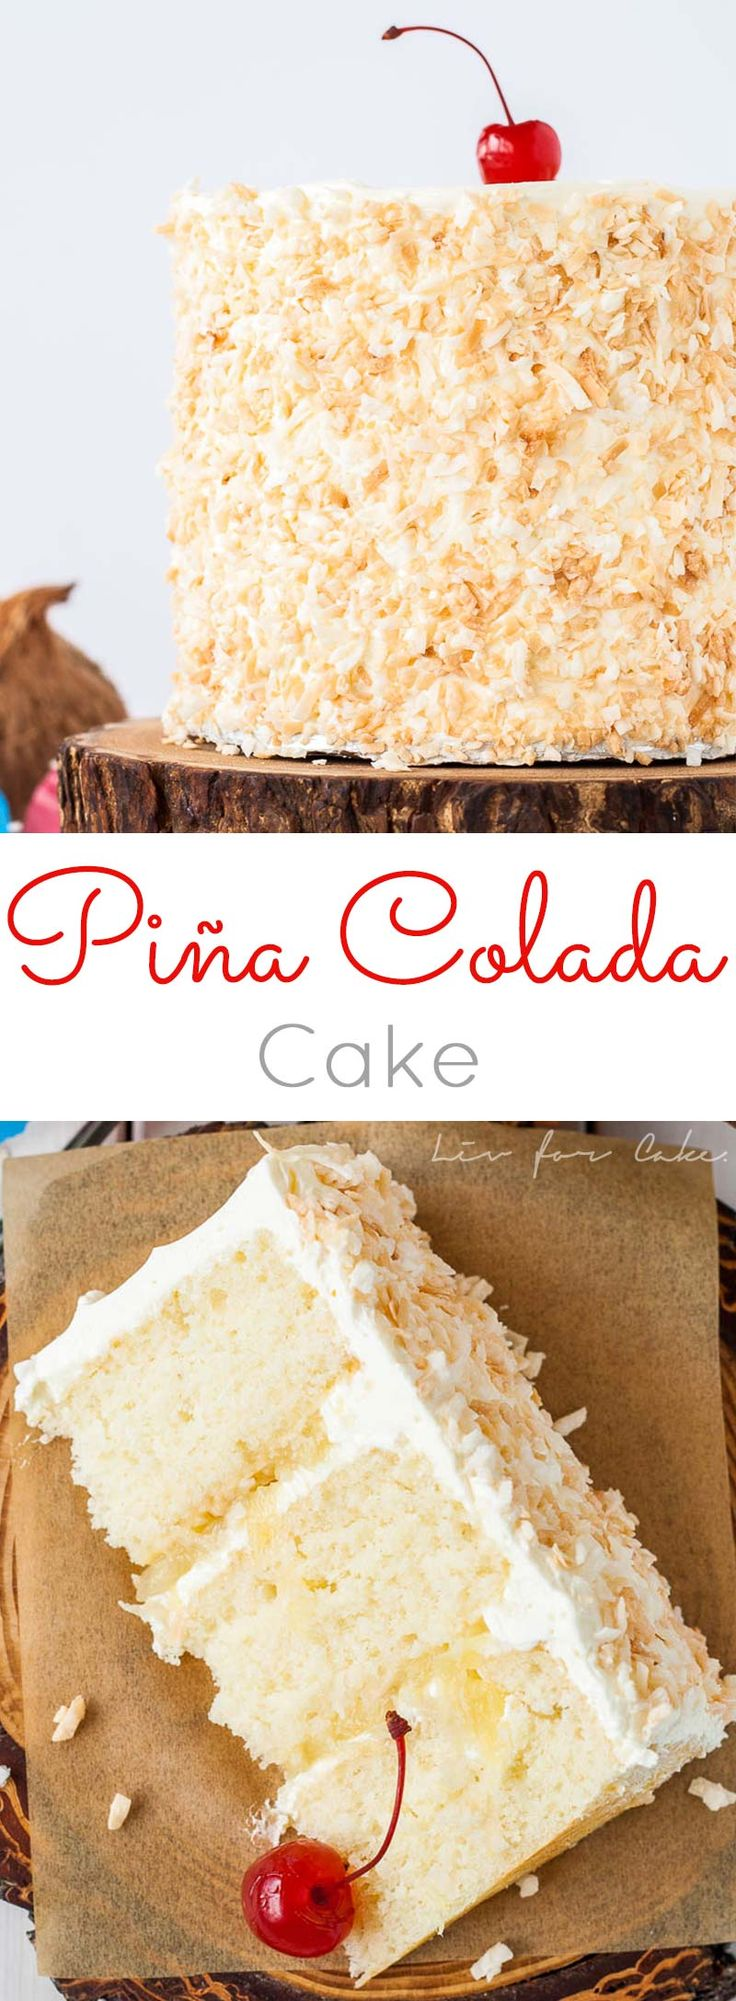 This Piña Colada Cake turns your favourite tropical cocktail into one delicious dessert! Rum flavoured cake and frosting paired with pineapple filling and toasted coconut.   livforcake.com